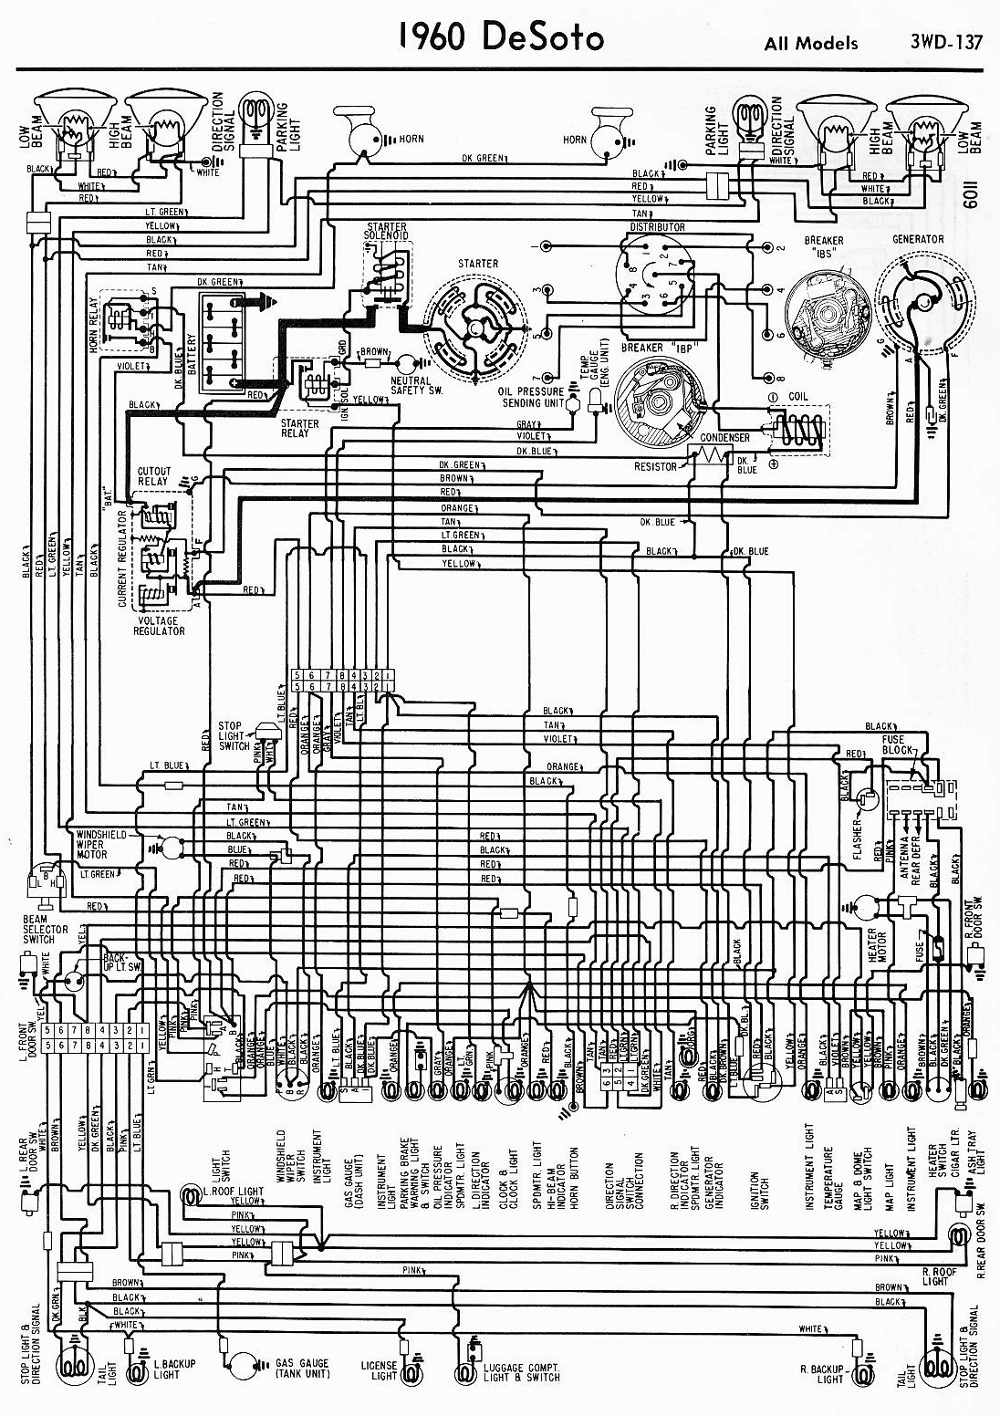 48 chrysler desoto wiring diagram chrysler crossfire